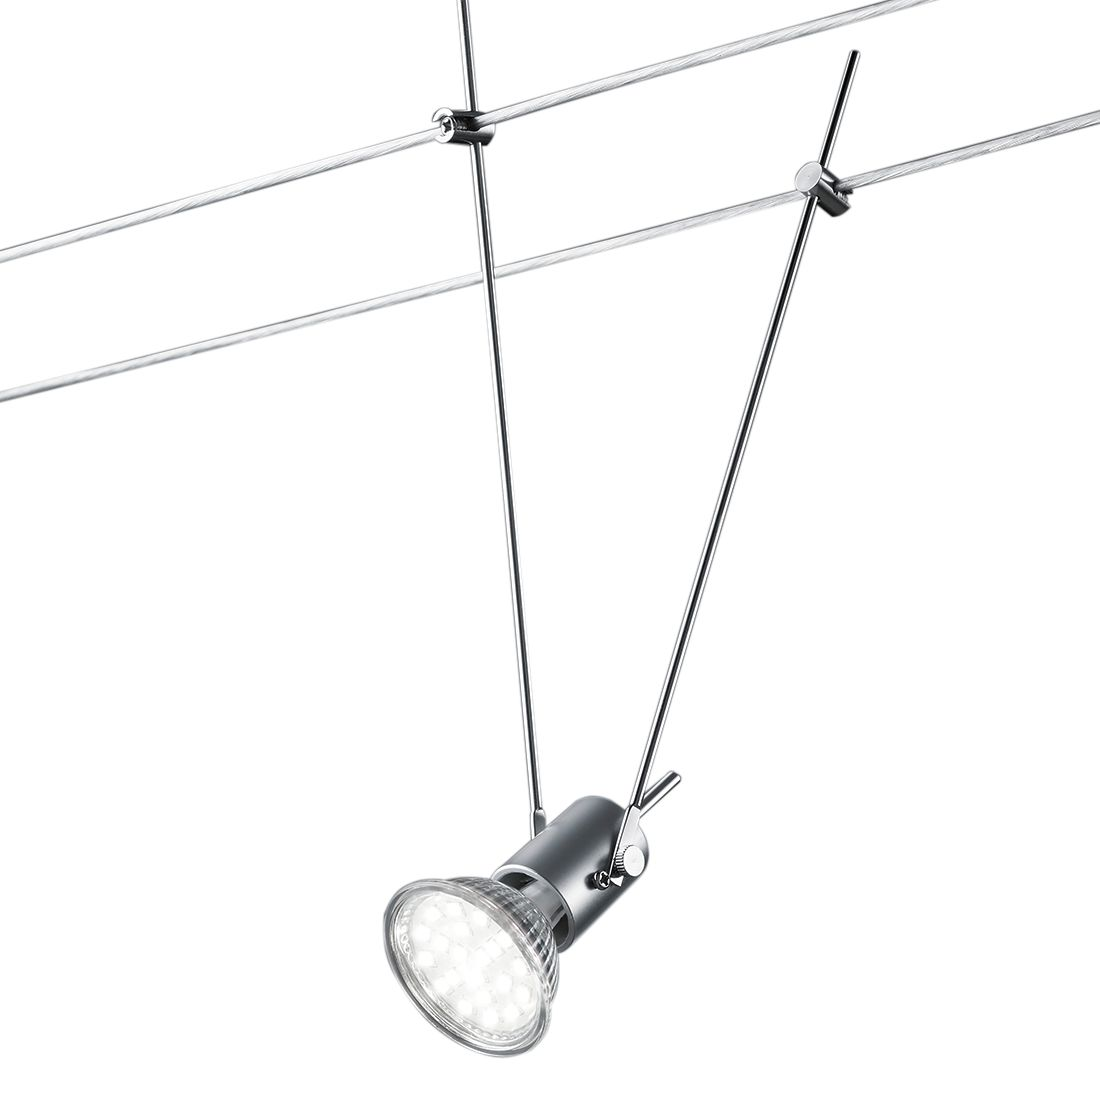 EEK A++, LED-Deckenleuchte Basic - Metall - 5-flammig, Trio